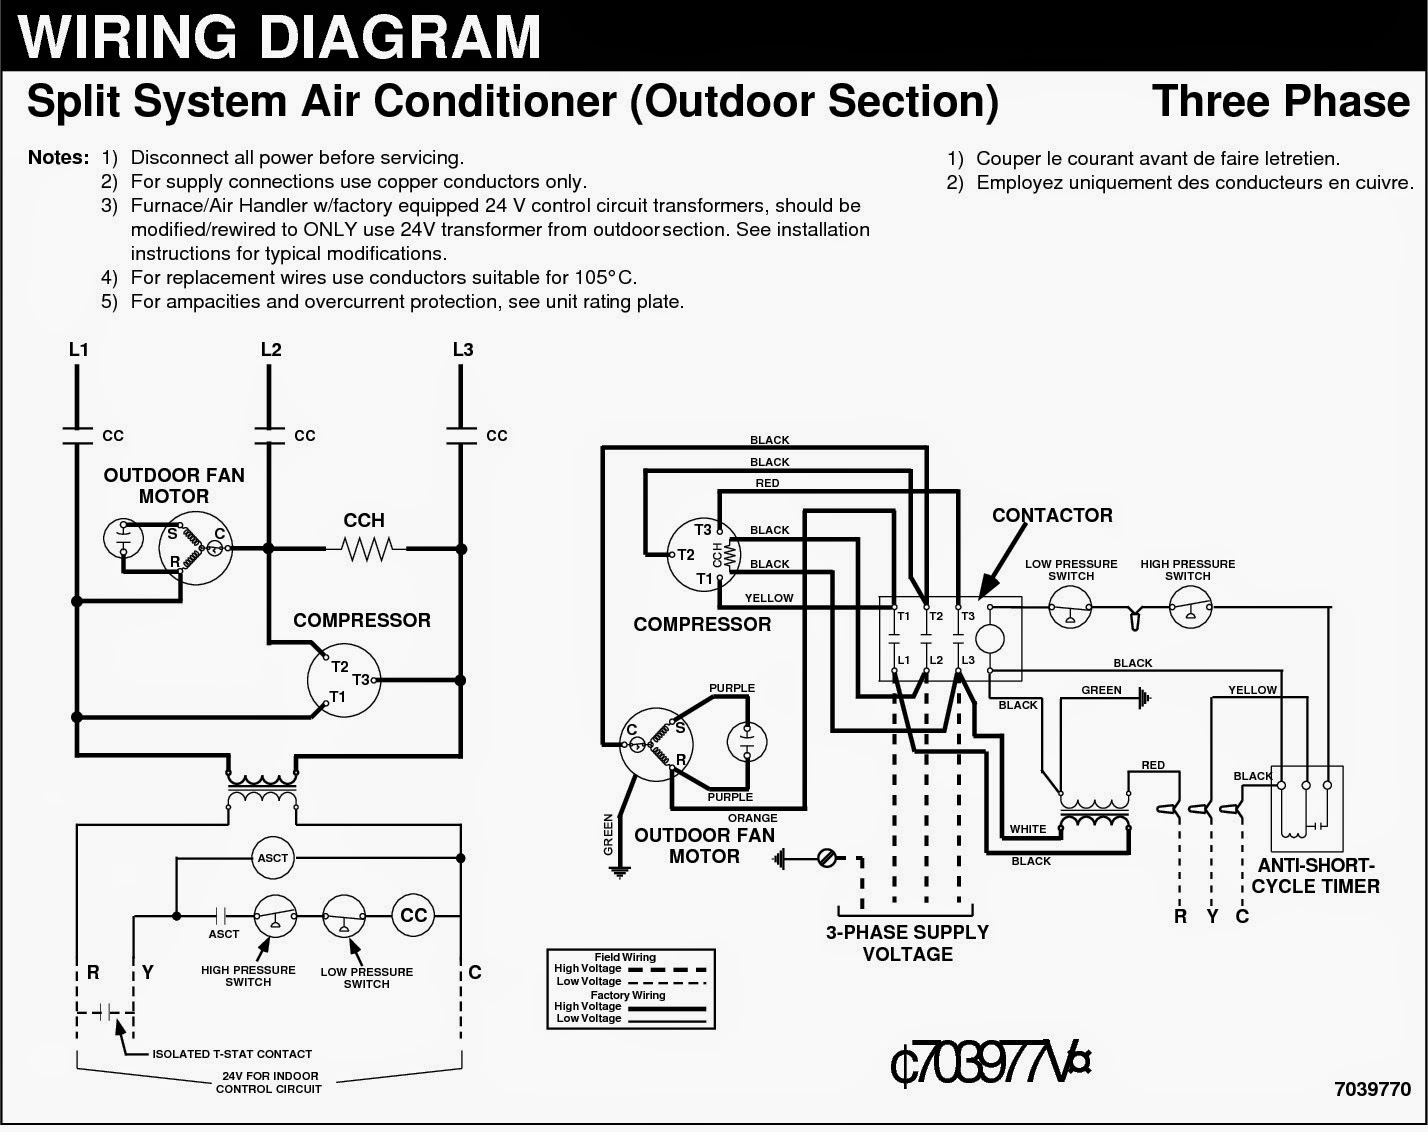 3+phase electrical wiring diagrams for air conditioning systems part two ac split system wiring diagram at mifinder.co